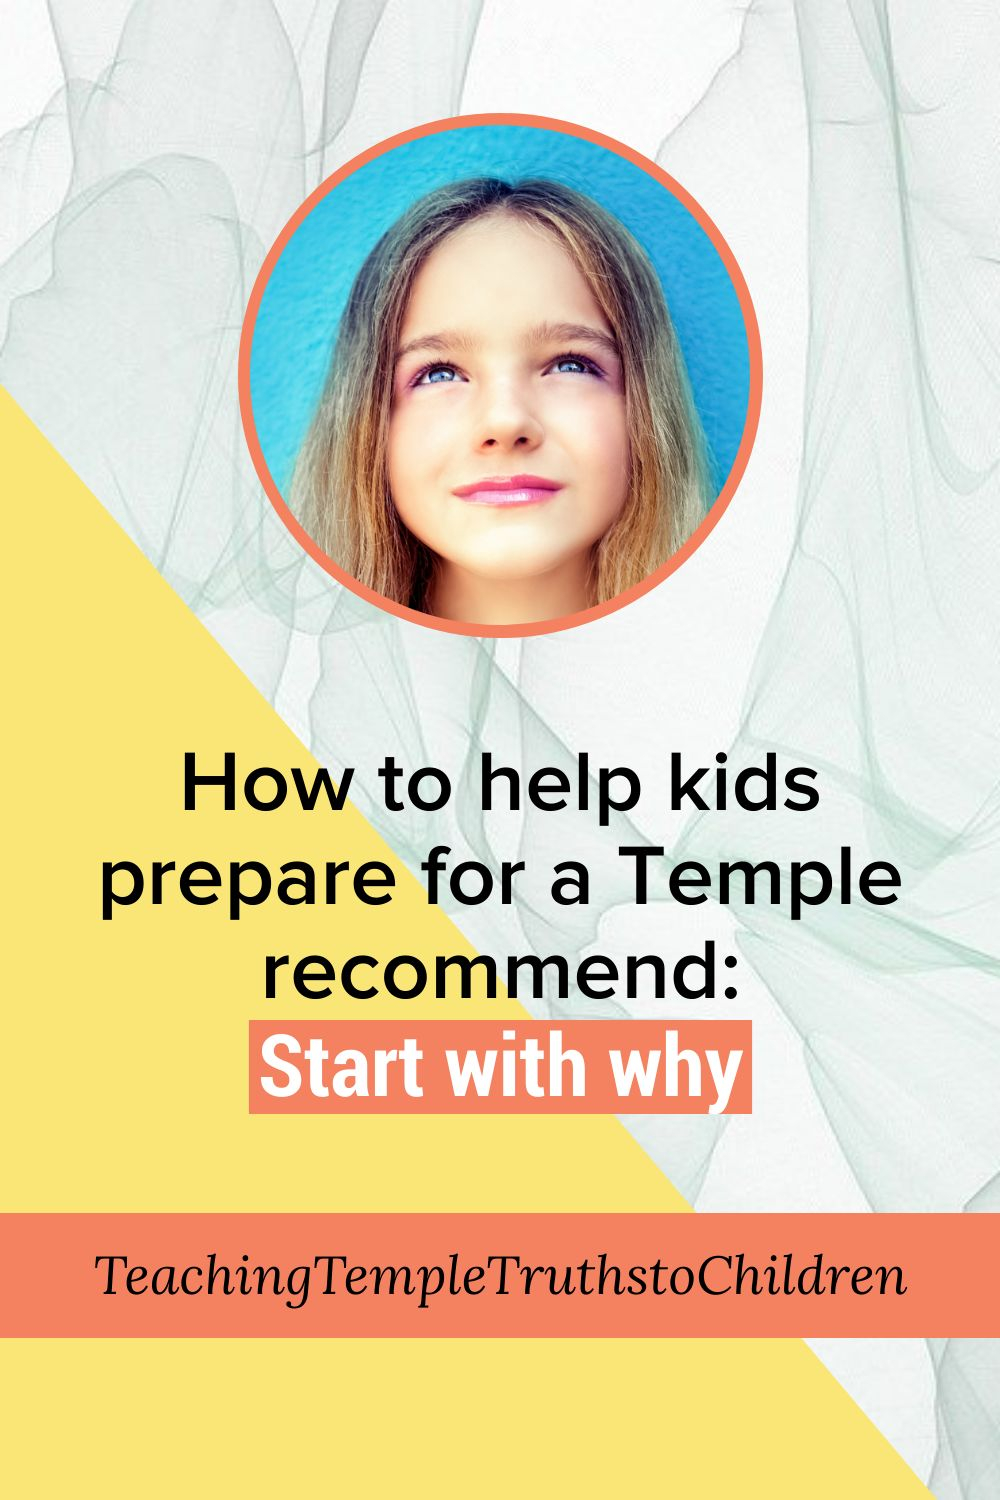 How to help kids prepare for a Temple recommend: Start with why